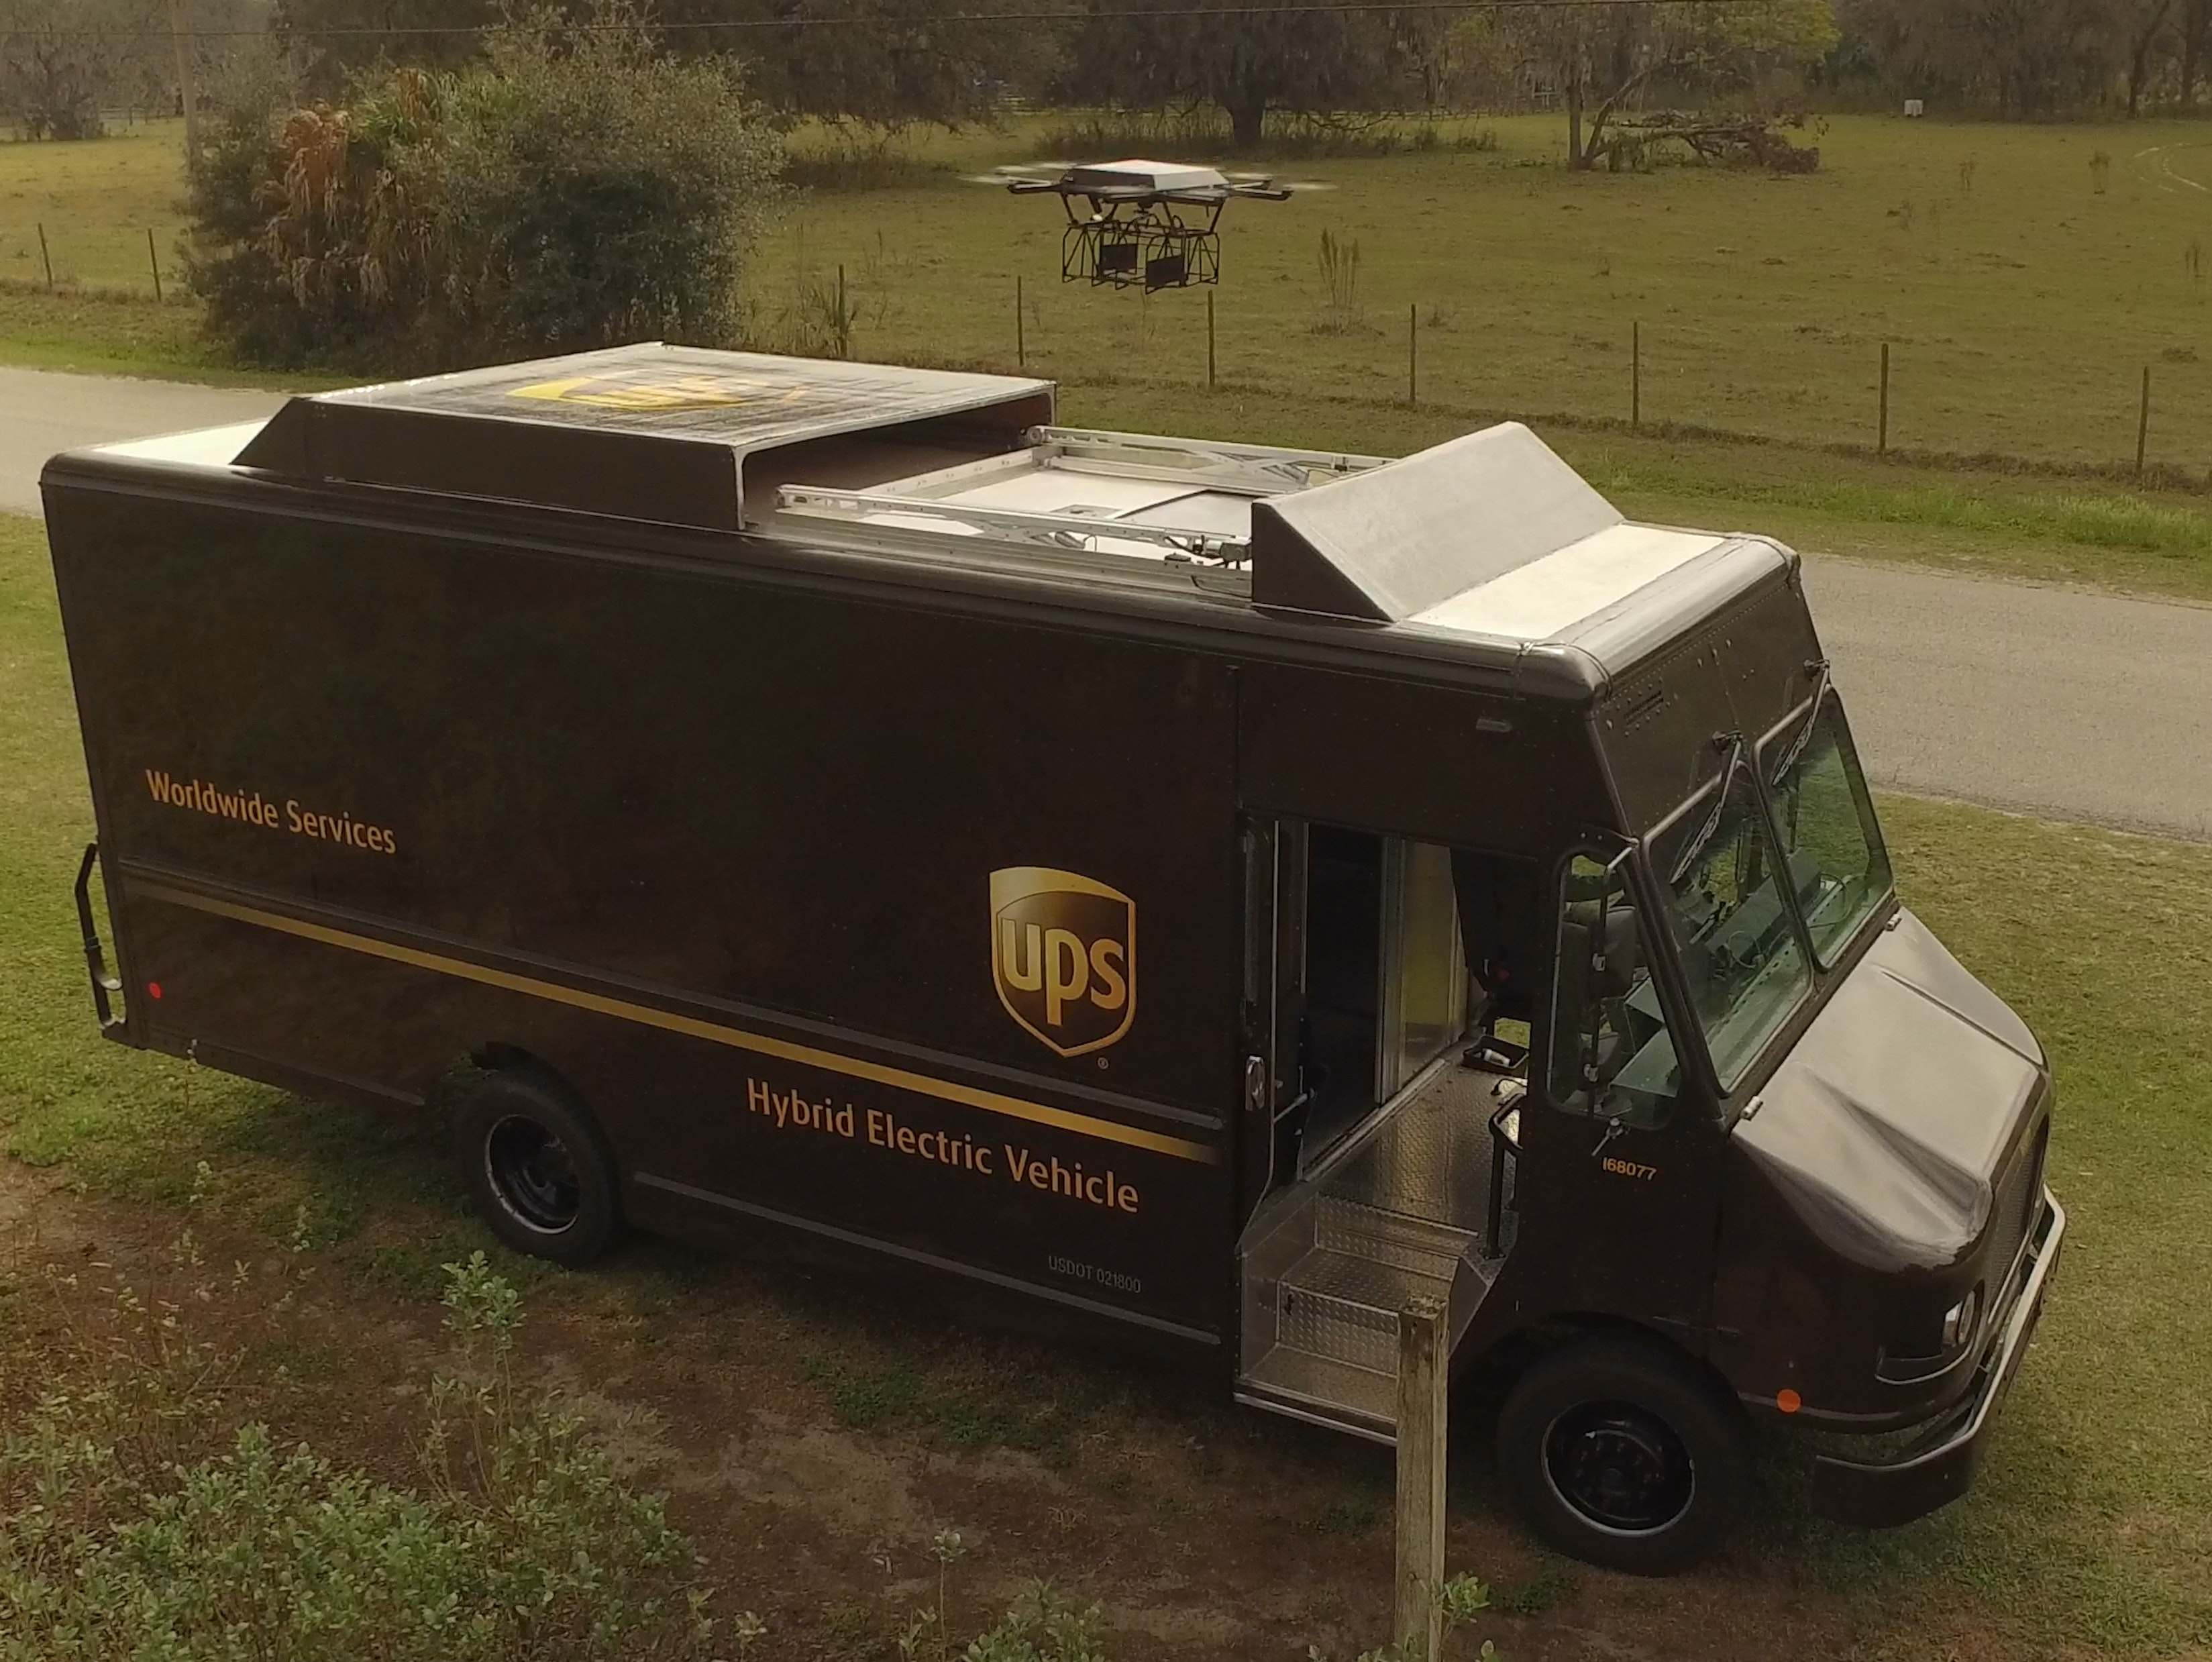 UPS is Still Working Out the Bugs in Its Drone Delivery System